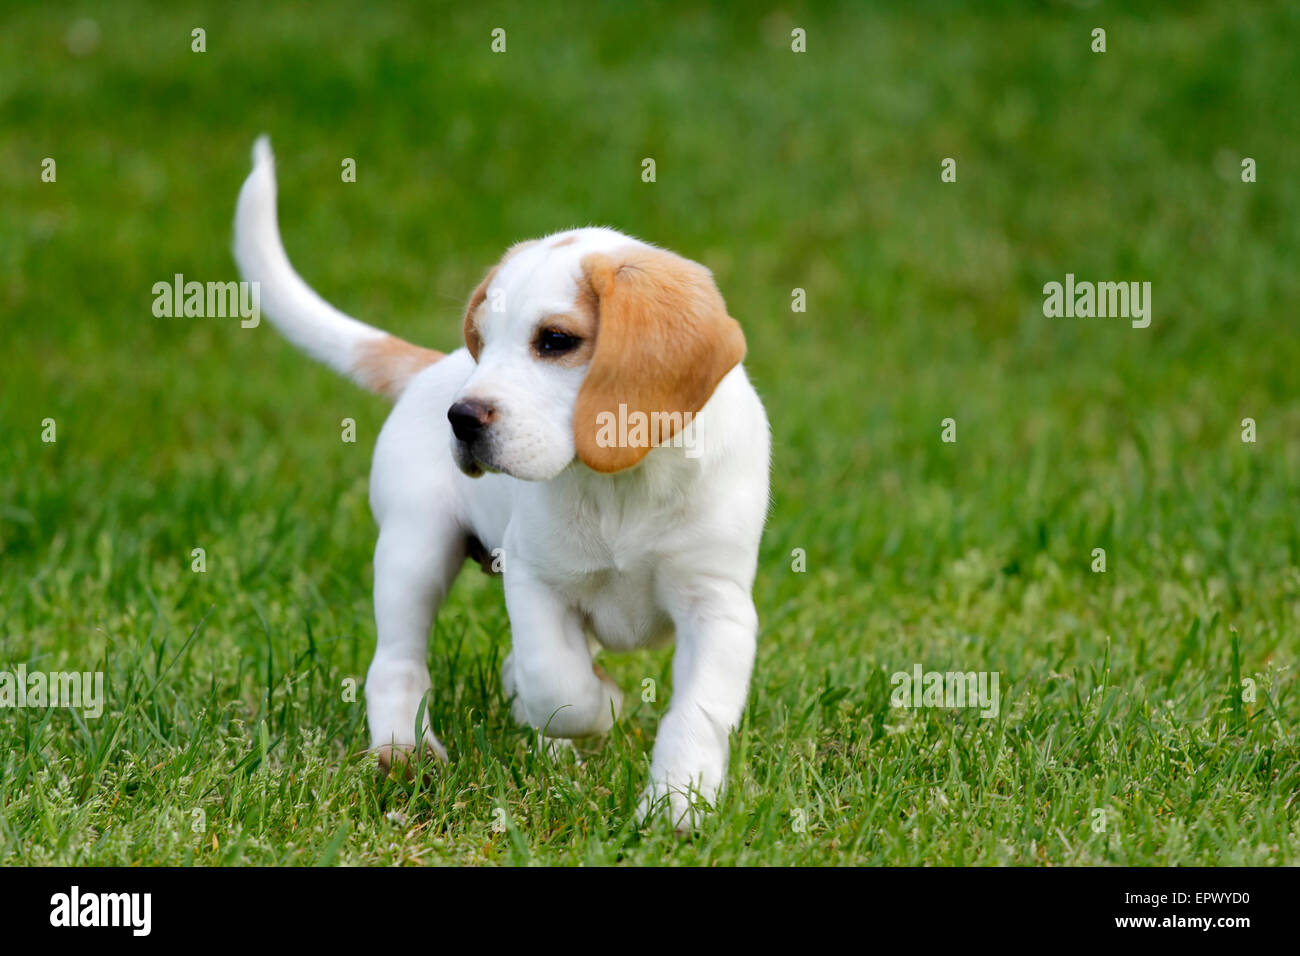 Cute beagle puppy running on the grass stock photo 82934236 alamy cute beagle puppy running on the grass voltagebd Image collections